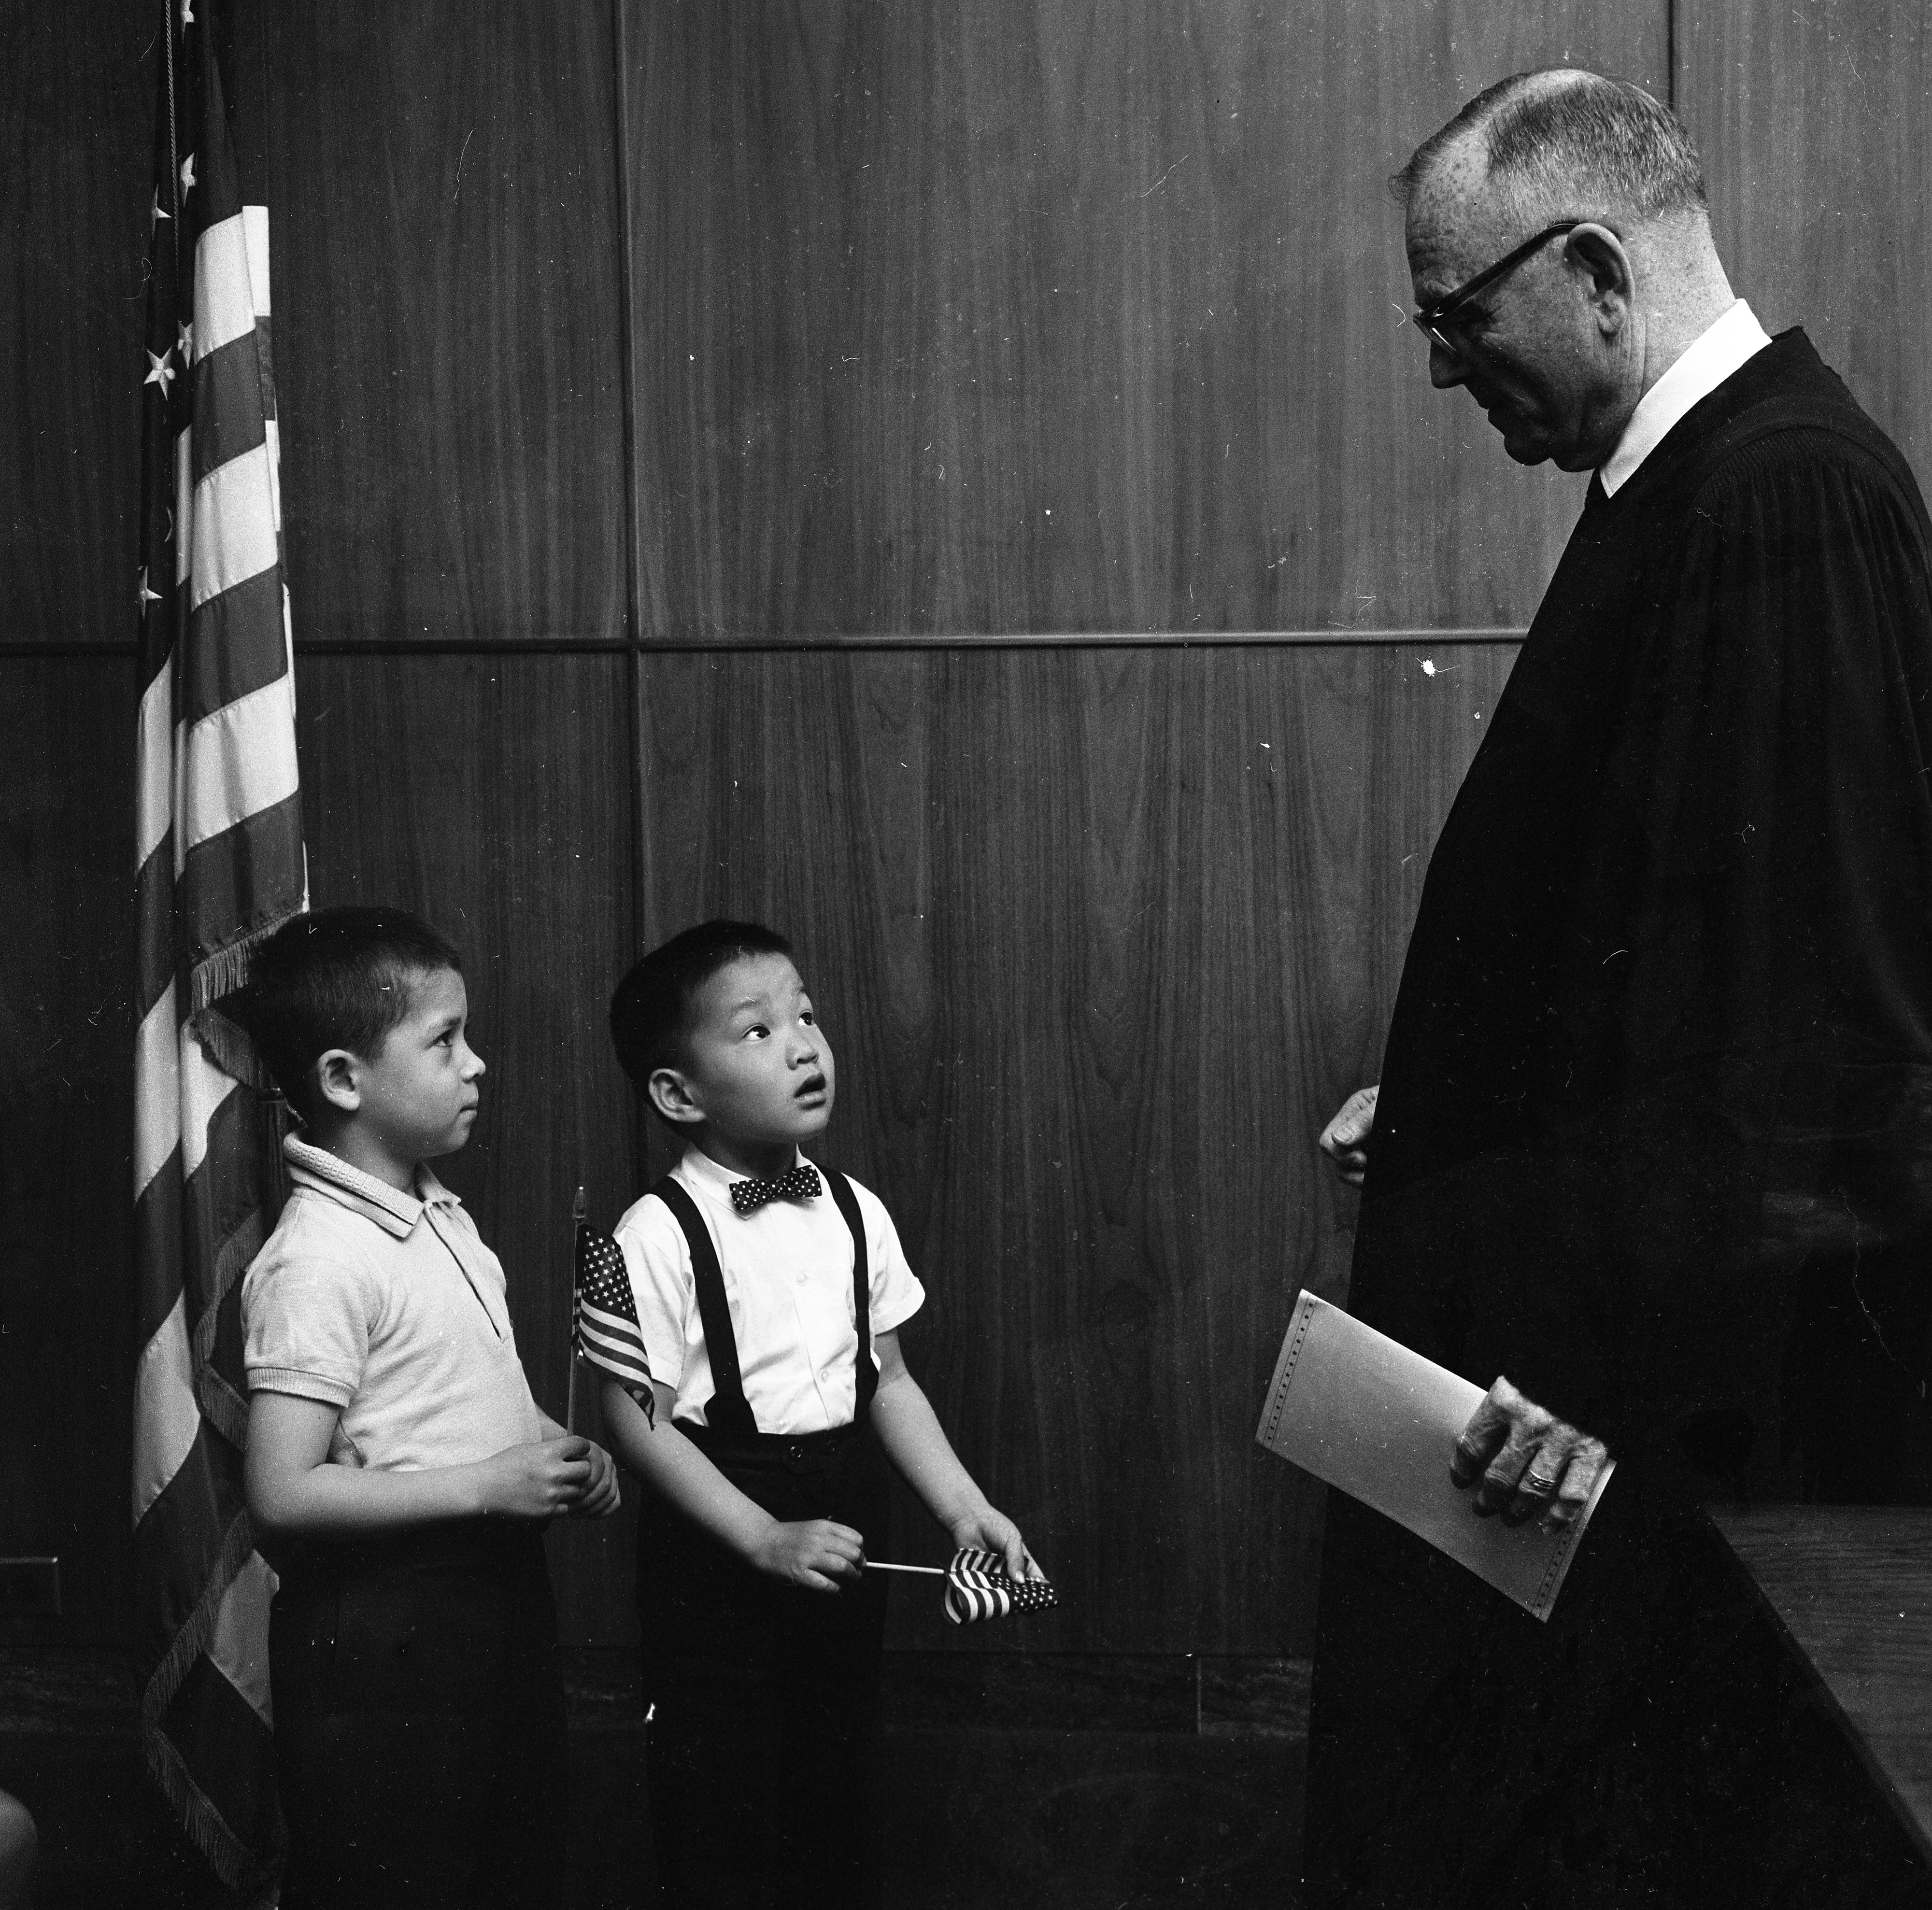 Judge James R. Breakey Jr. Congratulates Two New U.S. Citizens, May 1963 image